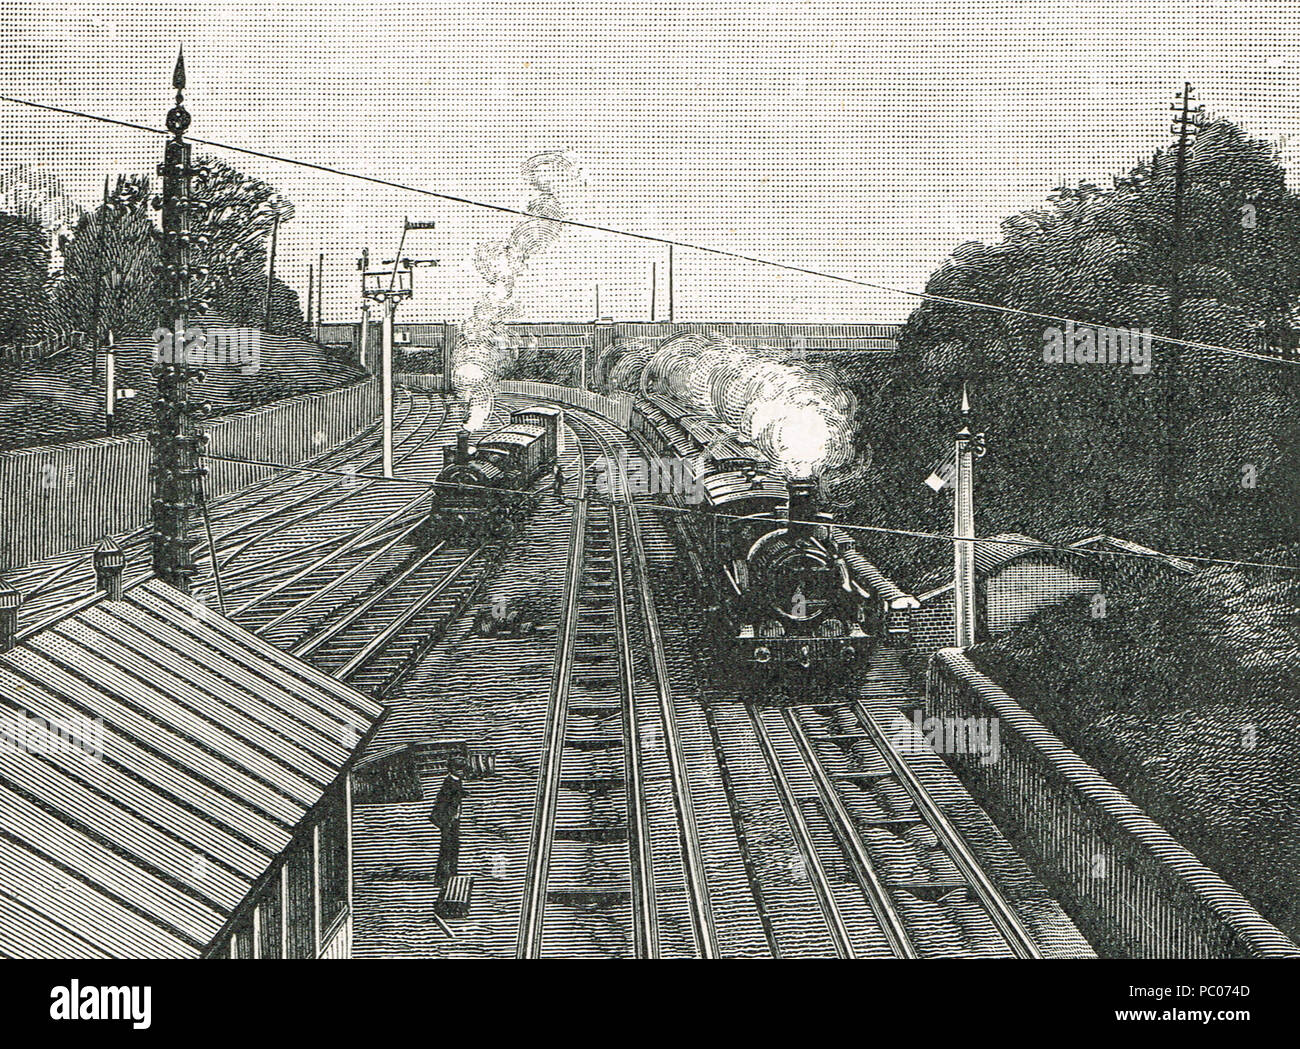 The Flying Dutchman passing Acton station at sixty  miles per hour, on the down route of the Great Western Railway in the 19th Century - Stock Image